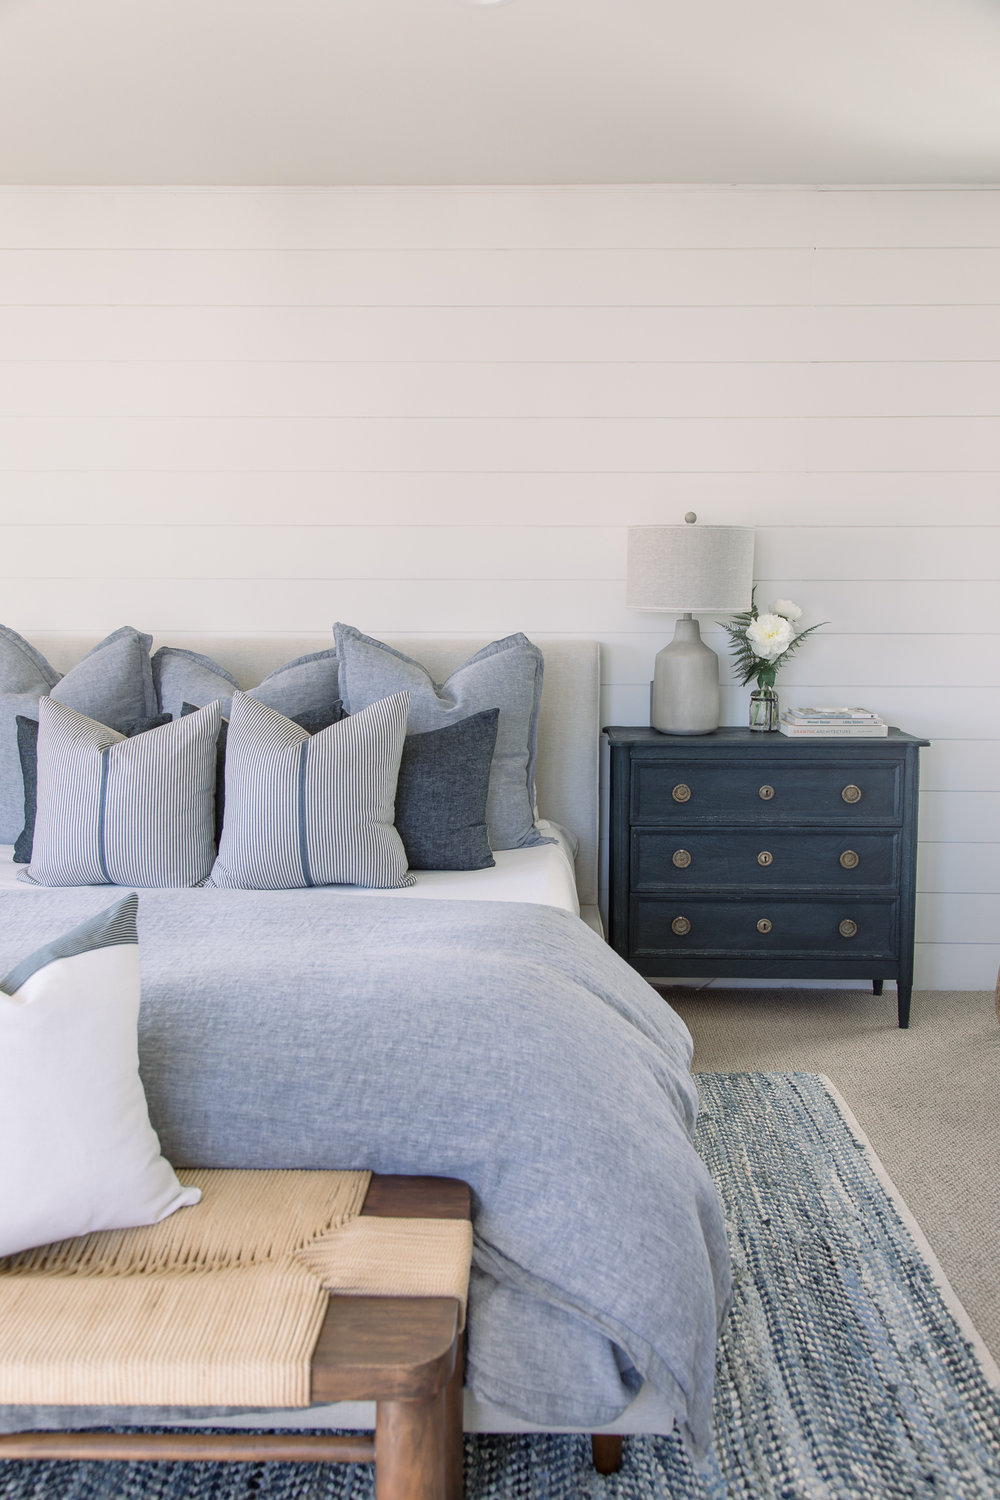 The shiplap wall in the bedroom combined with the cool blue hues sparks dreams of being on a boat.